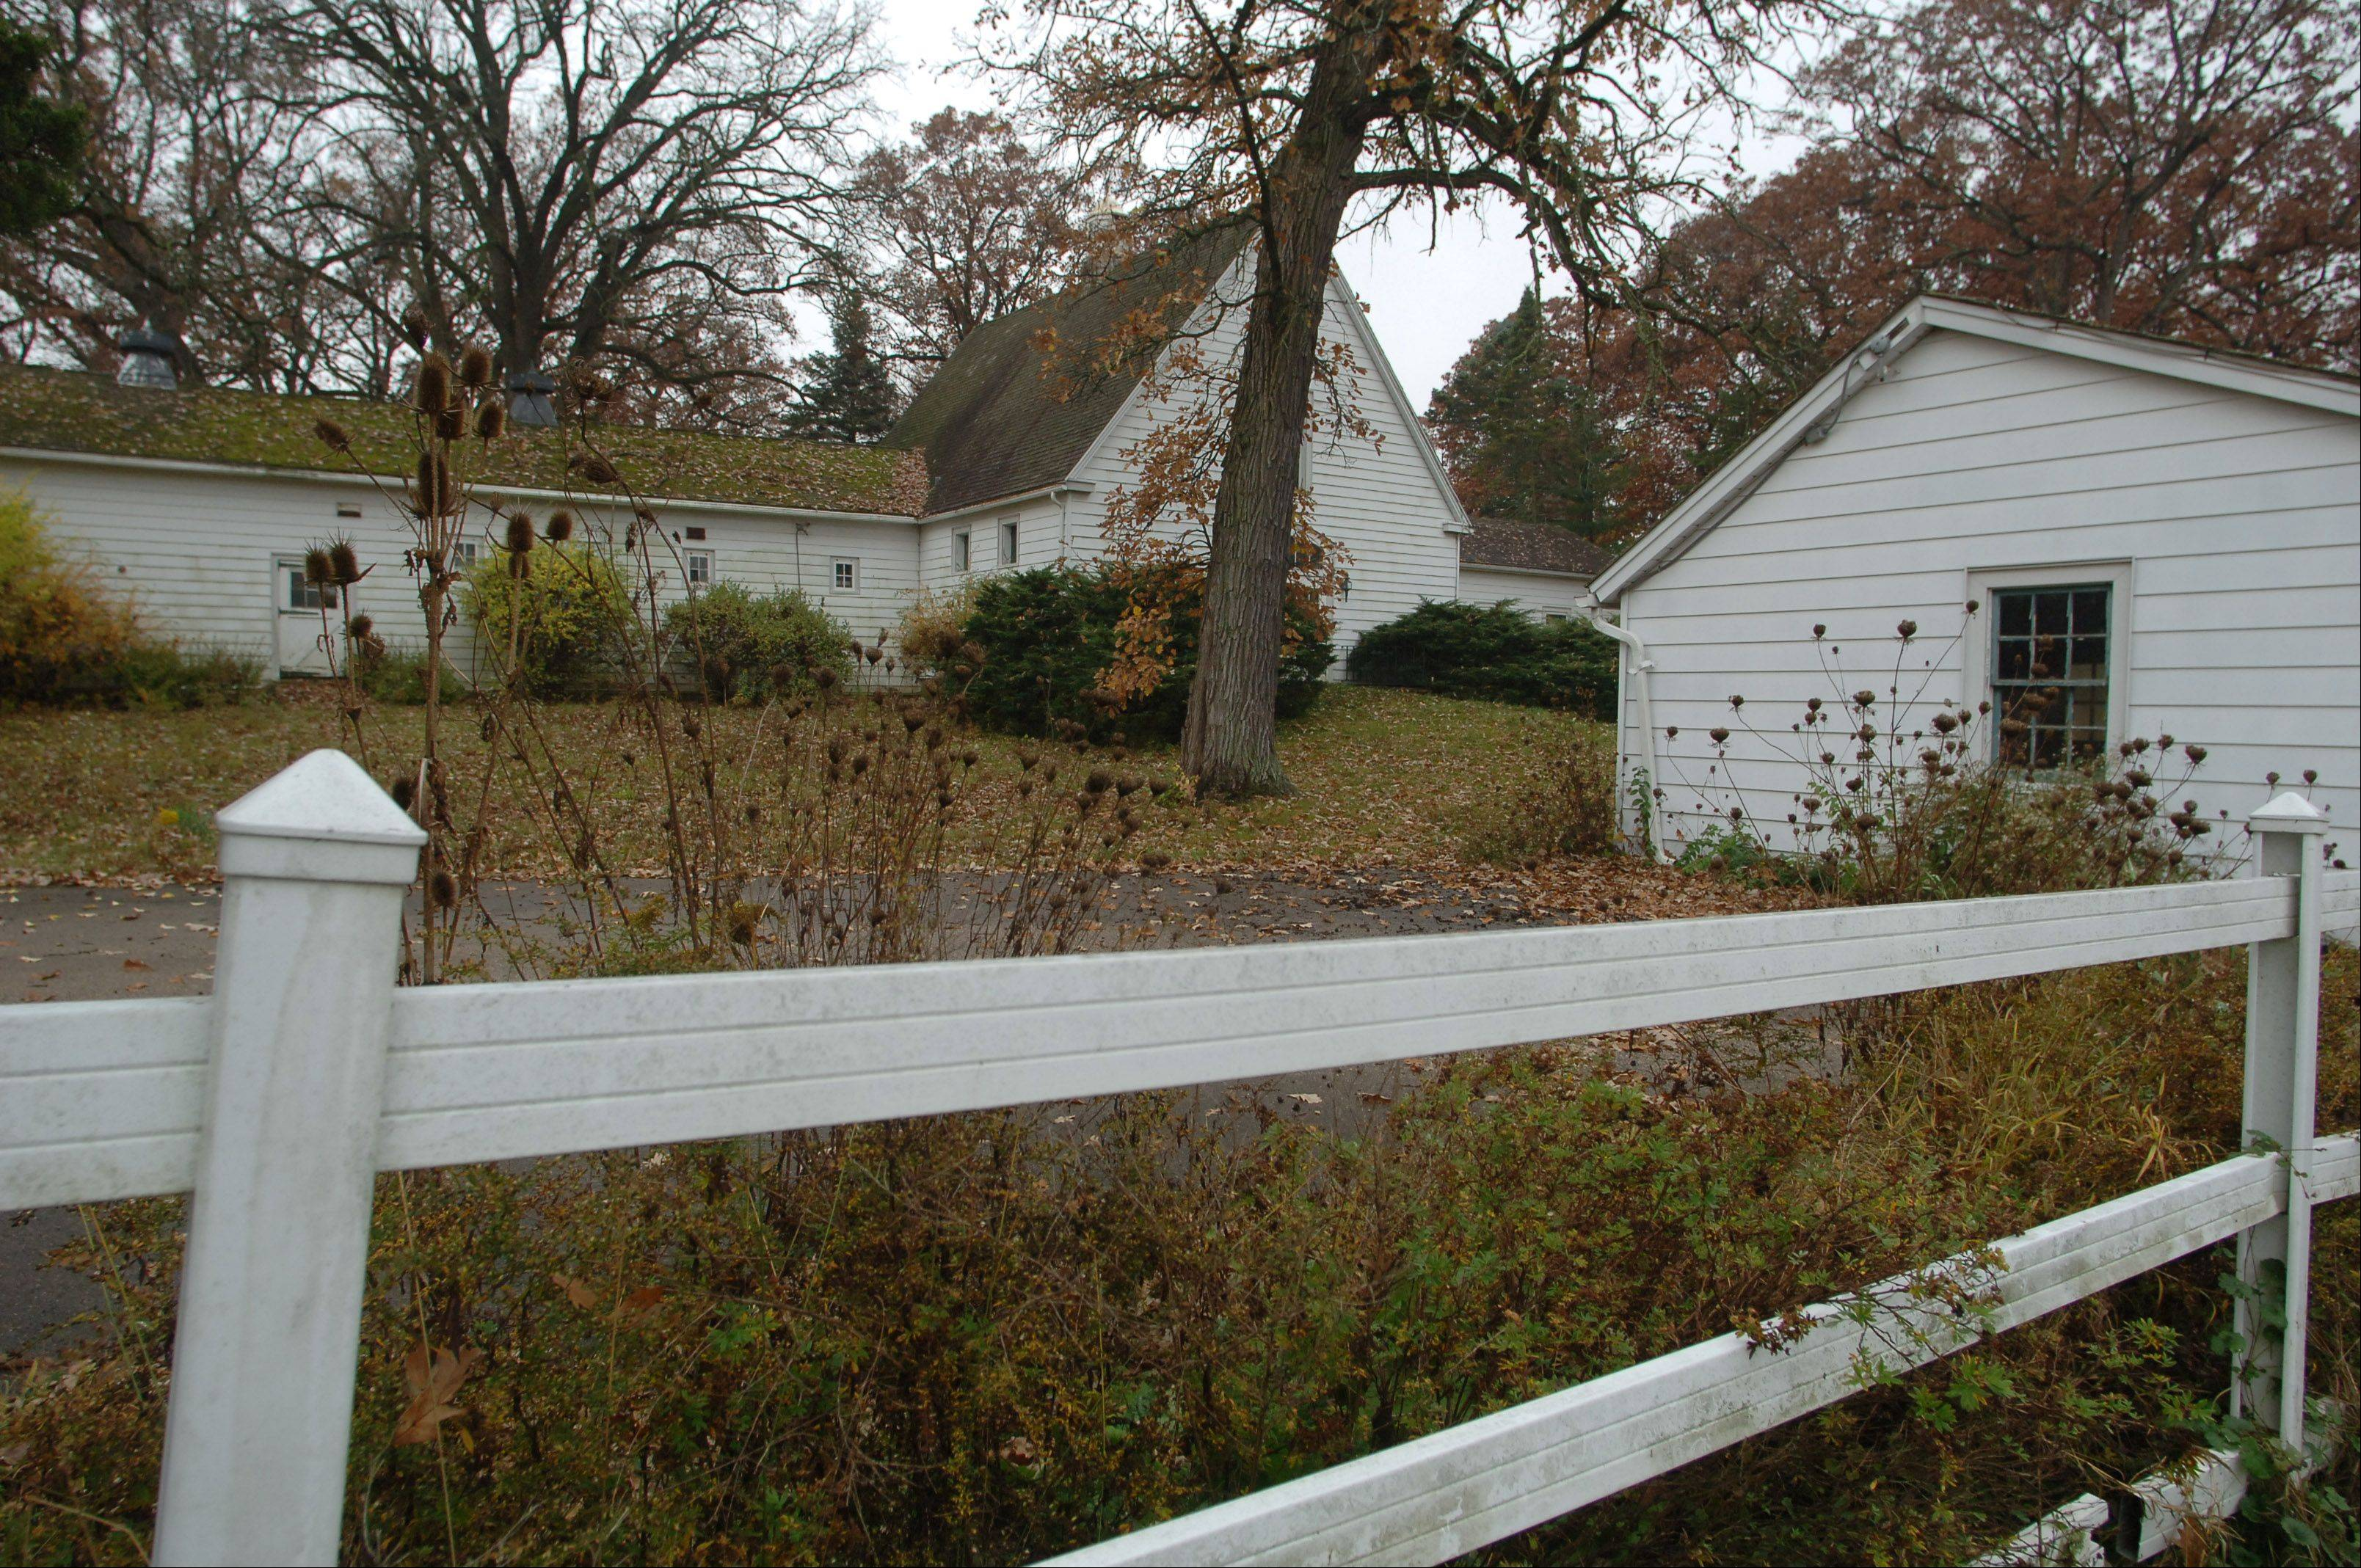 Buildings including an old barn next to the main house on what is known as the Whippoorwill farm on Route 60 near W.W. Grainger Inc., in Mettawa will be demolished. Proposals to convert the site into a Mettawa village hall proved too expensive, officials say.